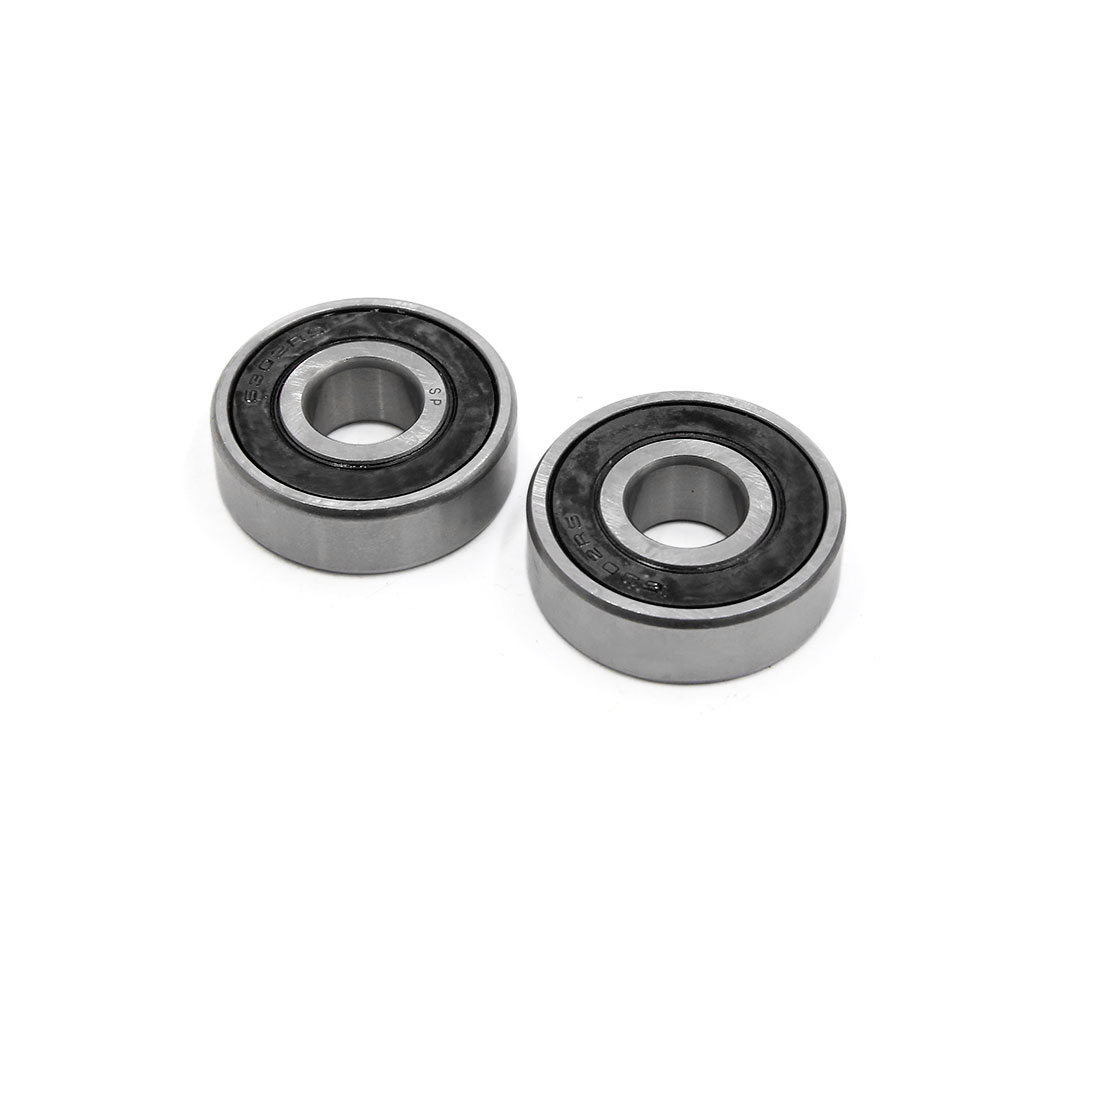 2pcs 6302-2RS Scooter Motorcycle Sealed Deep Groove Ball Bearing 42 x 15 x 13mm